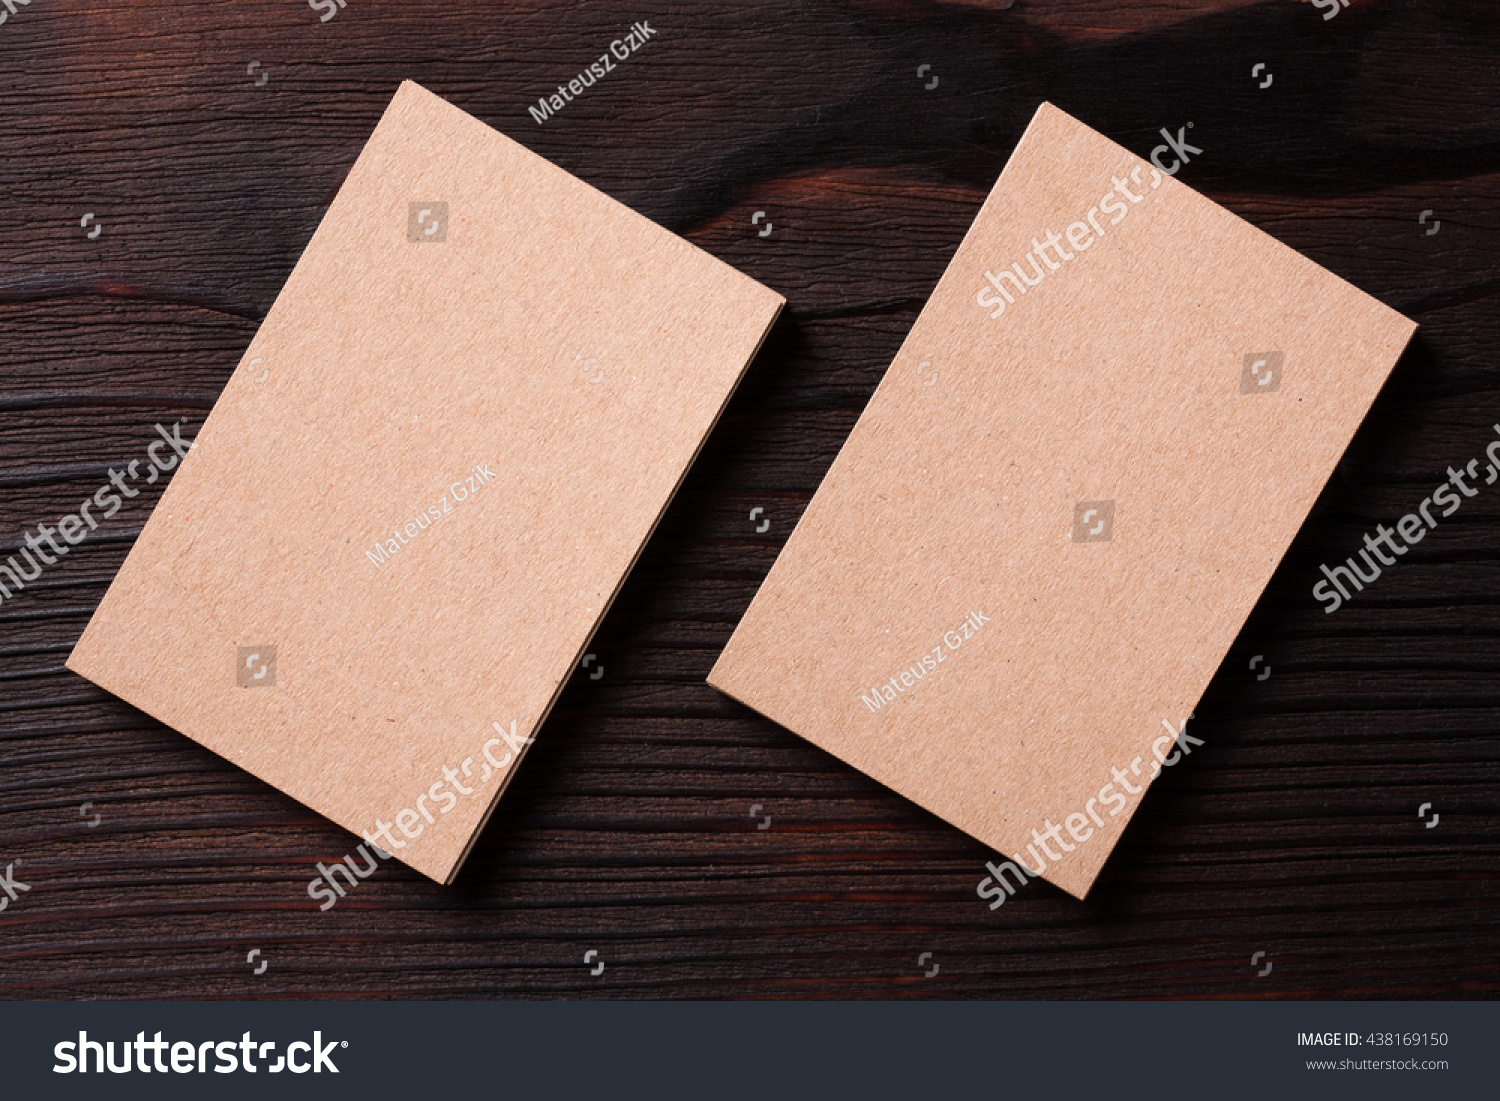 Recycled Paper Business Cards On Dark Stock Photo 438169150 ...